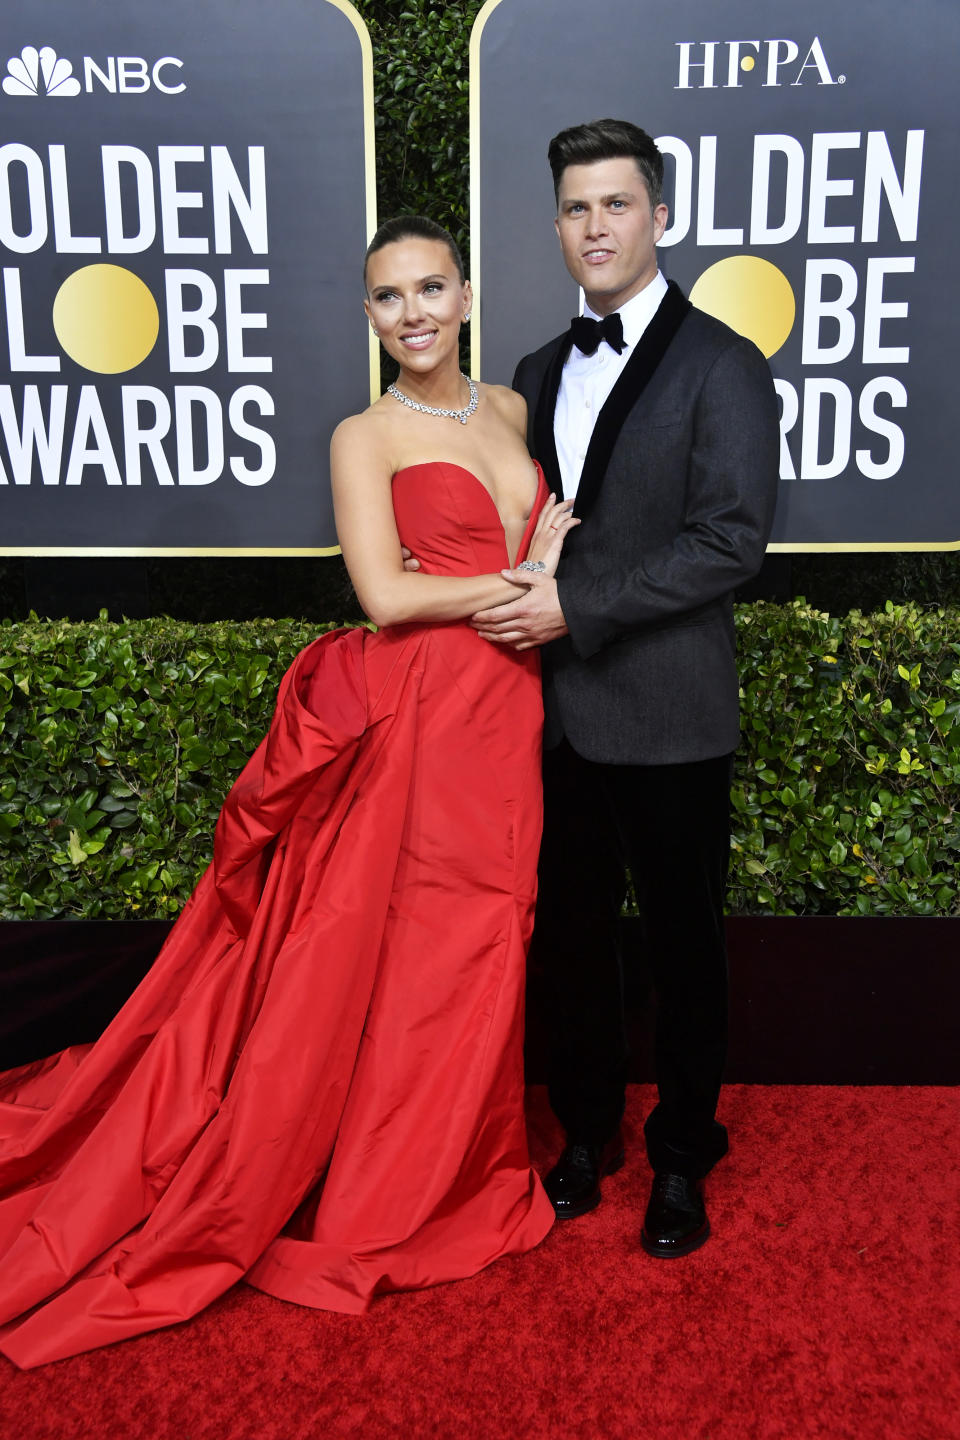 """The """"Marriage Story"""" actress and Golden Globe nominee set the red carpet on fire in a red gown by Vera Wang with fiancé Colin Jost. (Photo by Frazer Harrison/Getty Images)"""